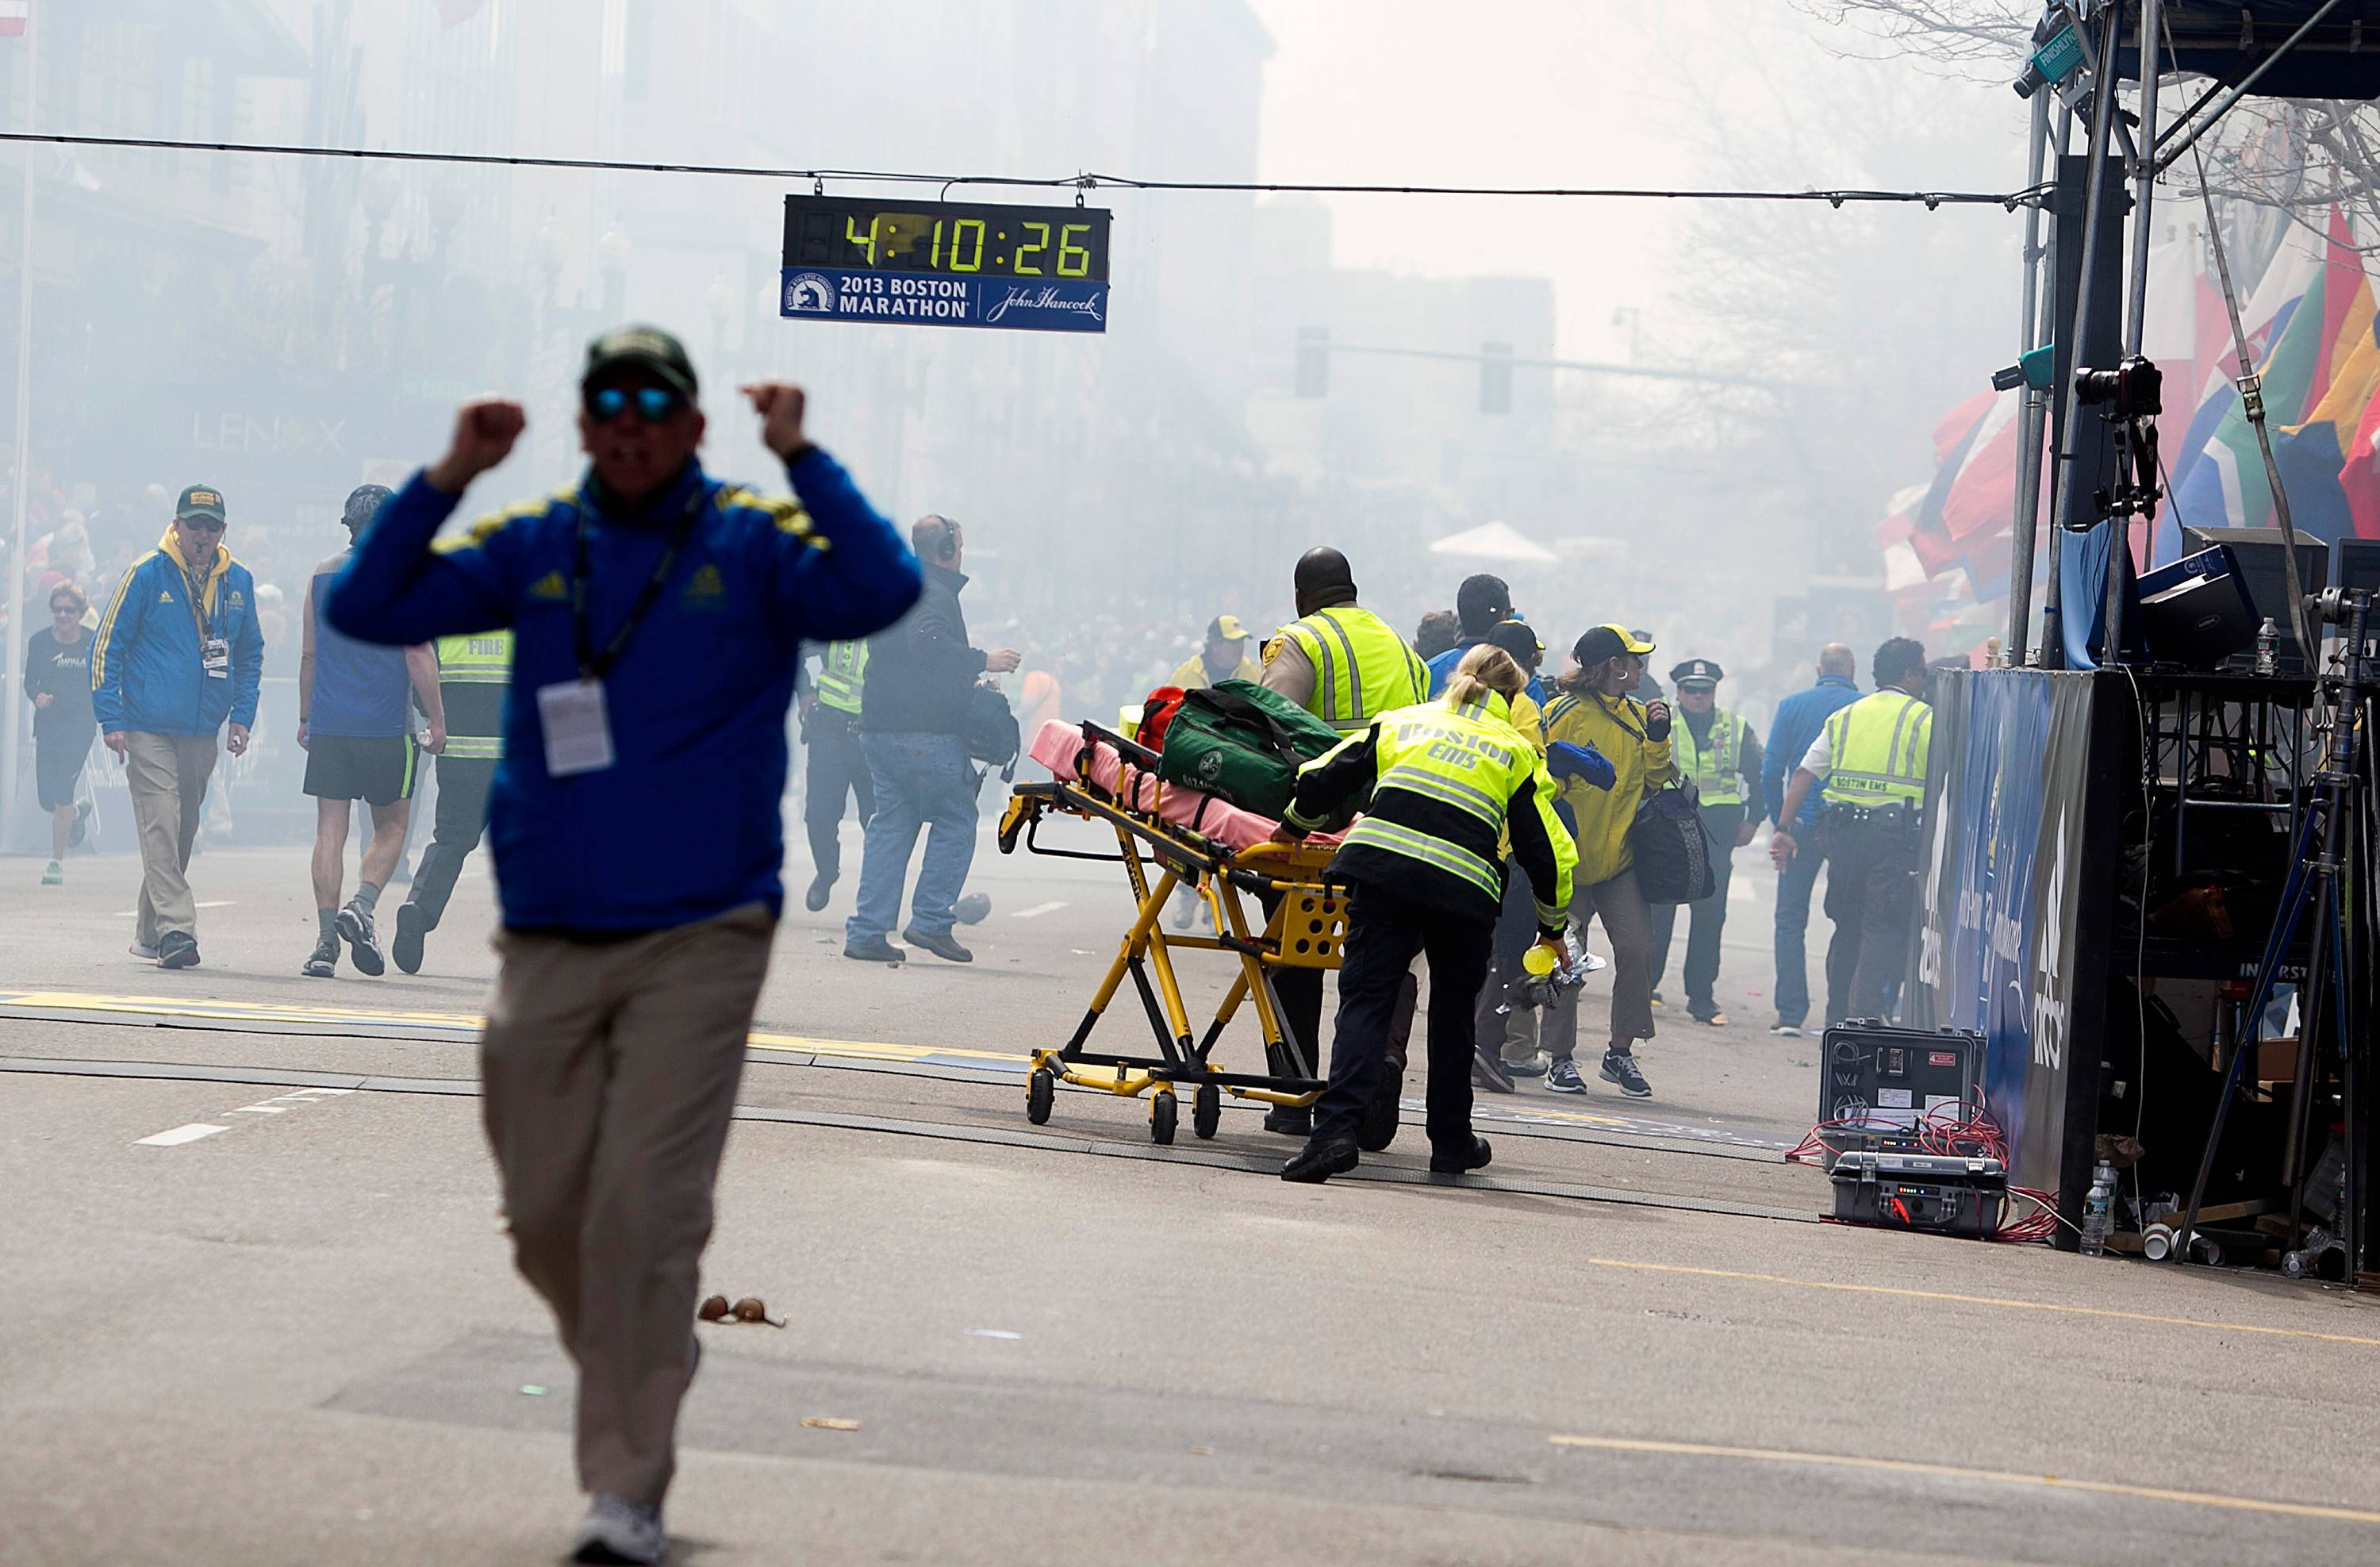 Timeline of events in the Boston Marathon bombing